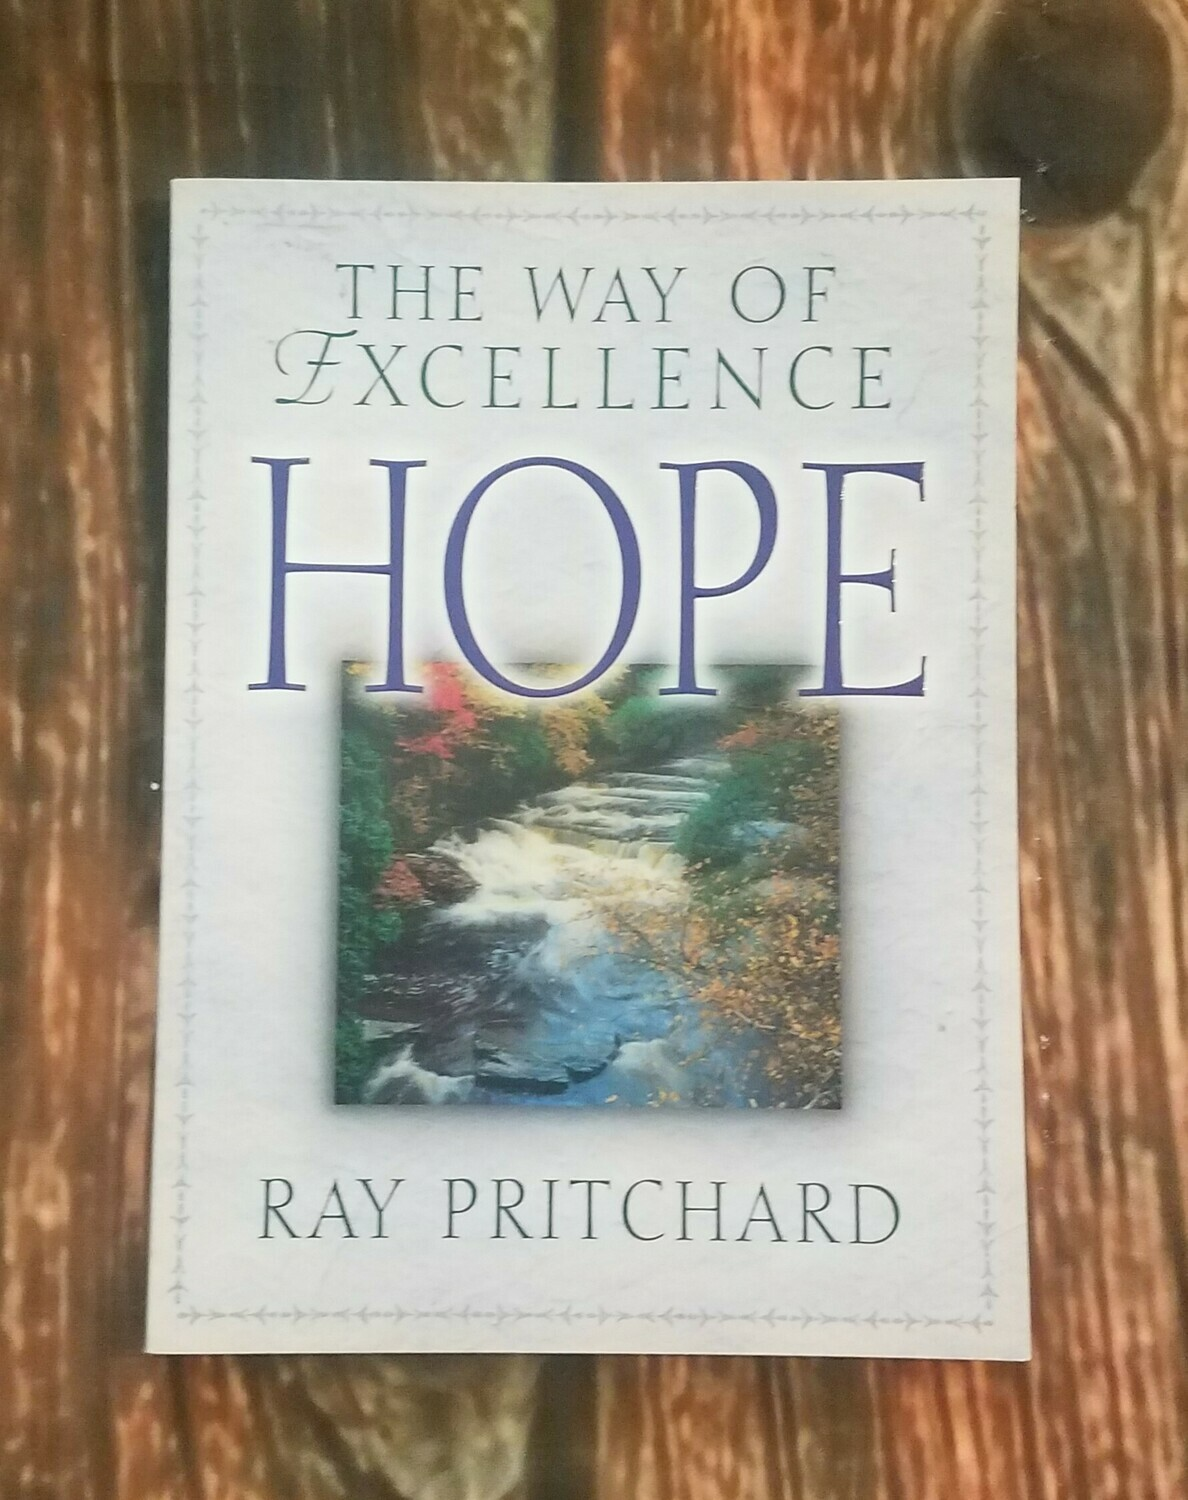 The Way of Excellence Hope by Ray Pritchard